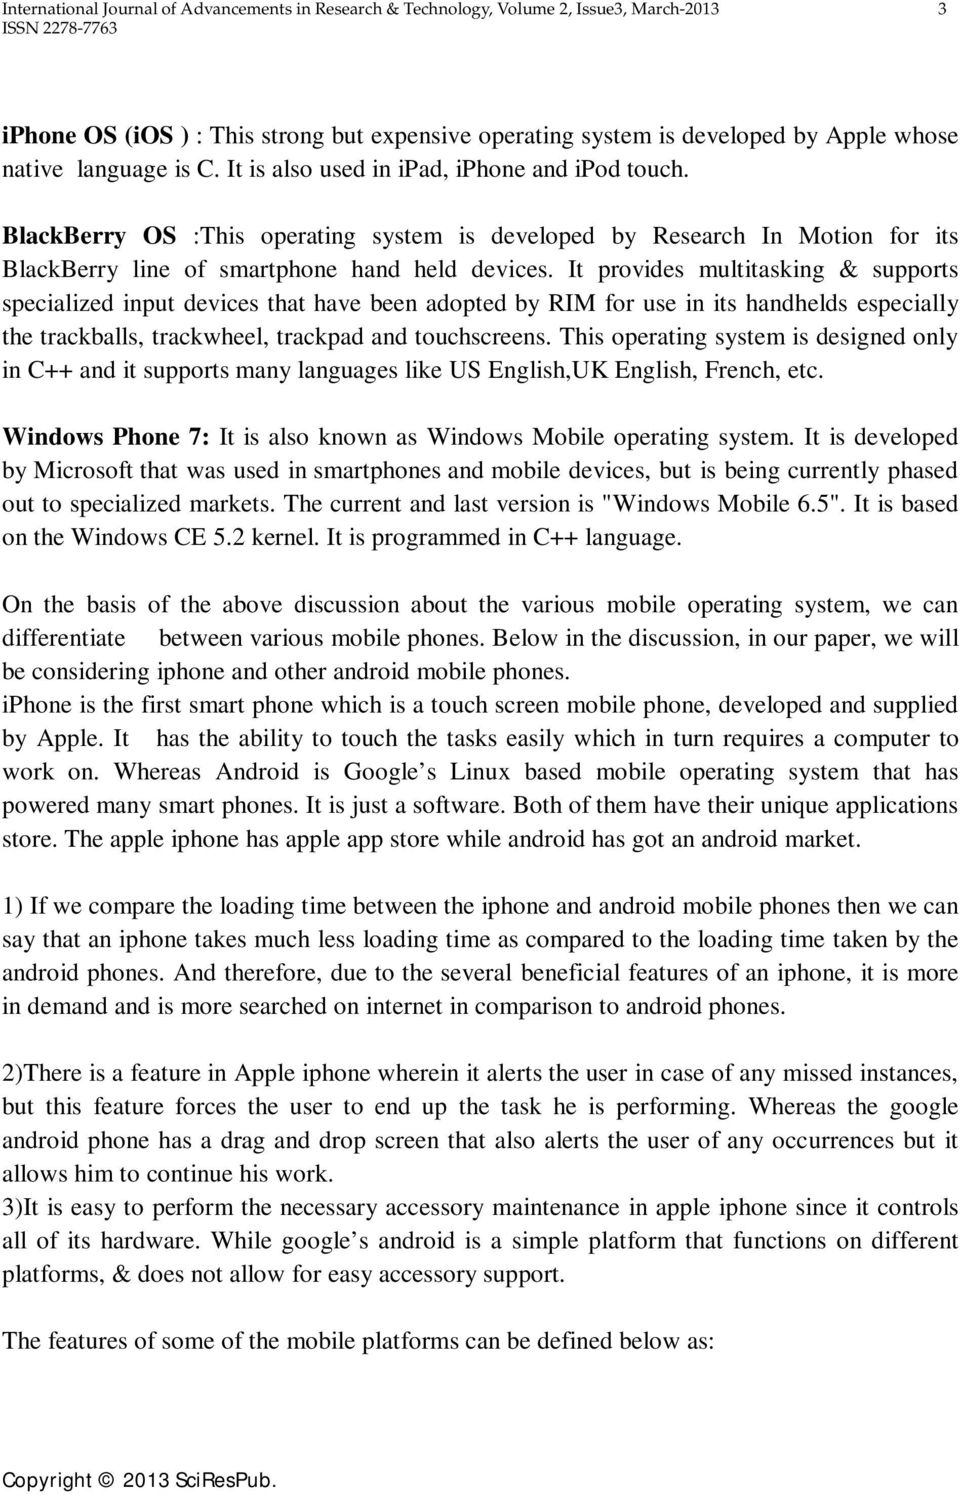 Comparative Study of Different Mobile Operating Systems - PDF